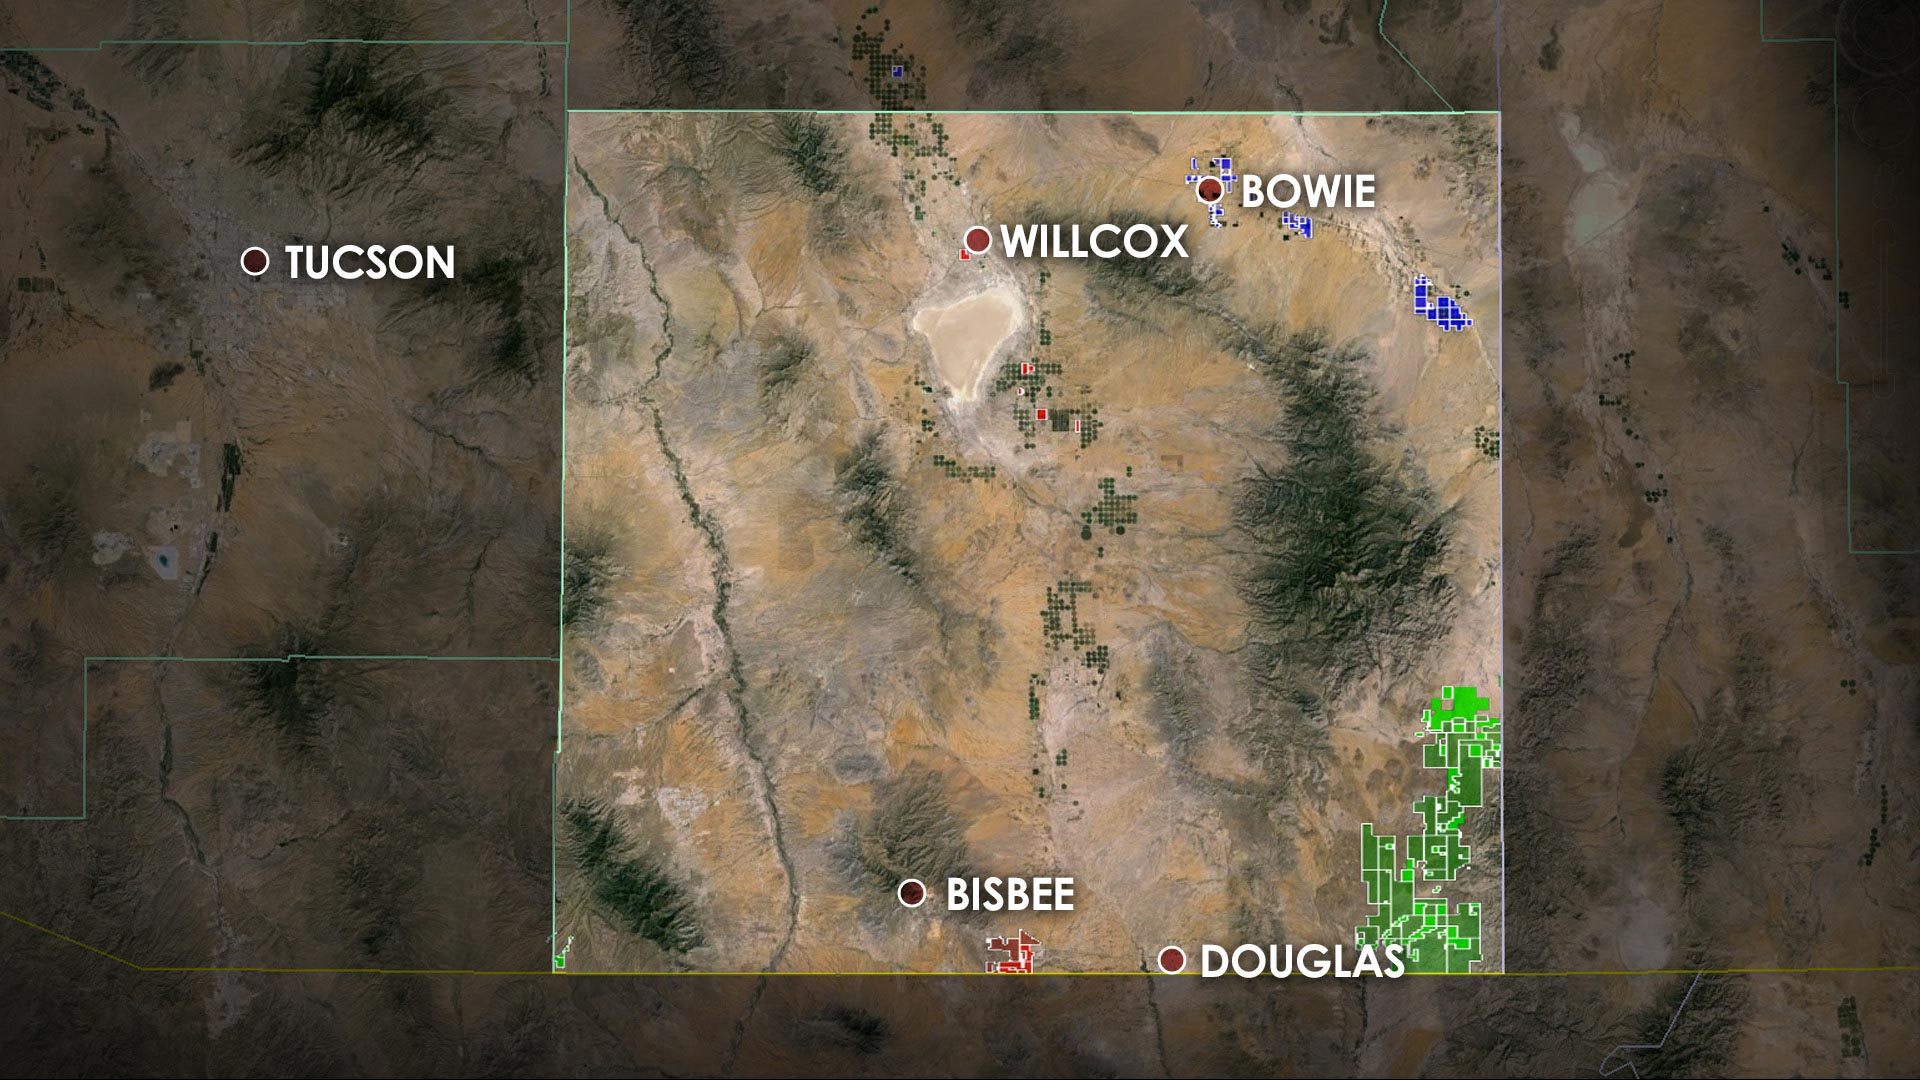 Three groups have purchased large portions of land in Cochise County since 2010. They include Mark Cook, a long-established pecan and pistachio farmer working with a California nut grower (blue); Howard G. Buffett, the son of billionaire Warren Buffett (red); and Stan Kroenke, a land and professional sports mogul (green).